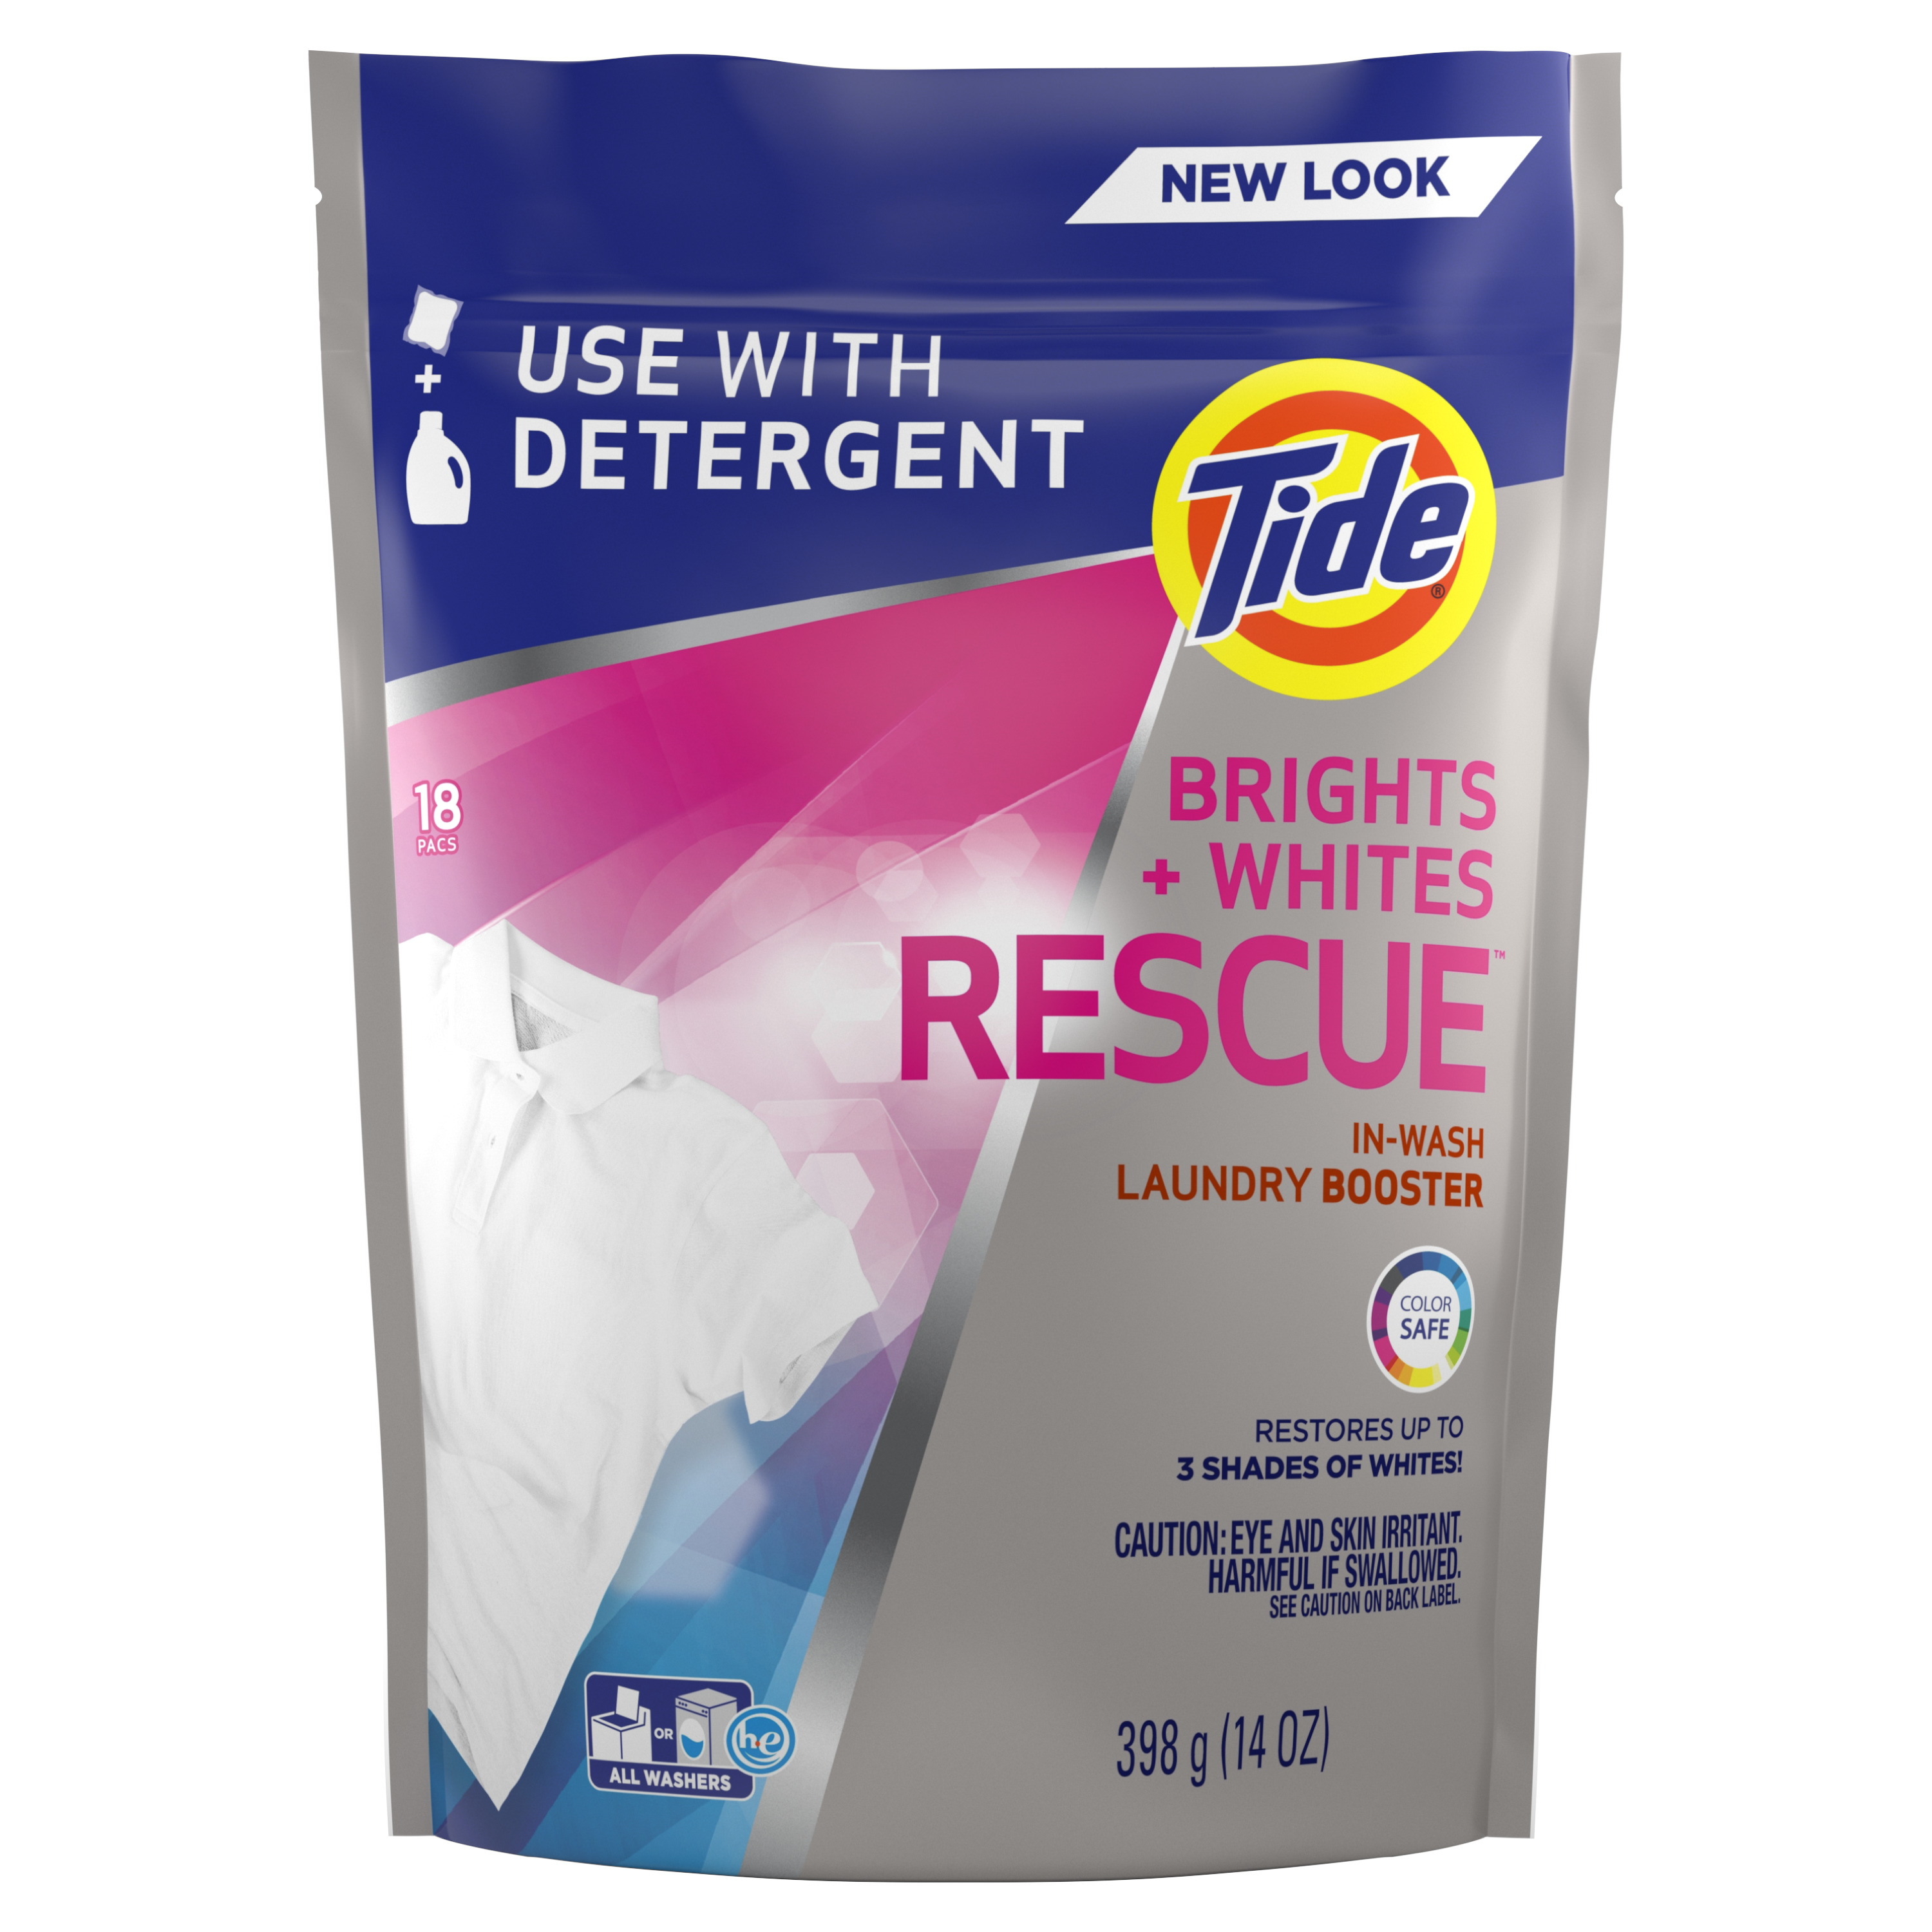 Tide Bright + Whites Rescue In-Wash Laundry Booster, 18 pacs